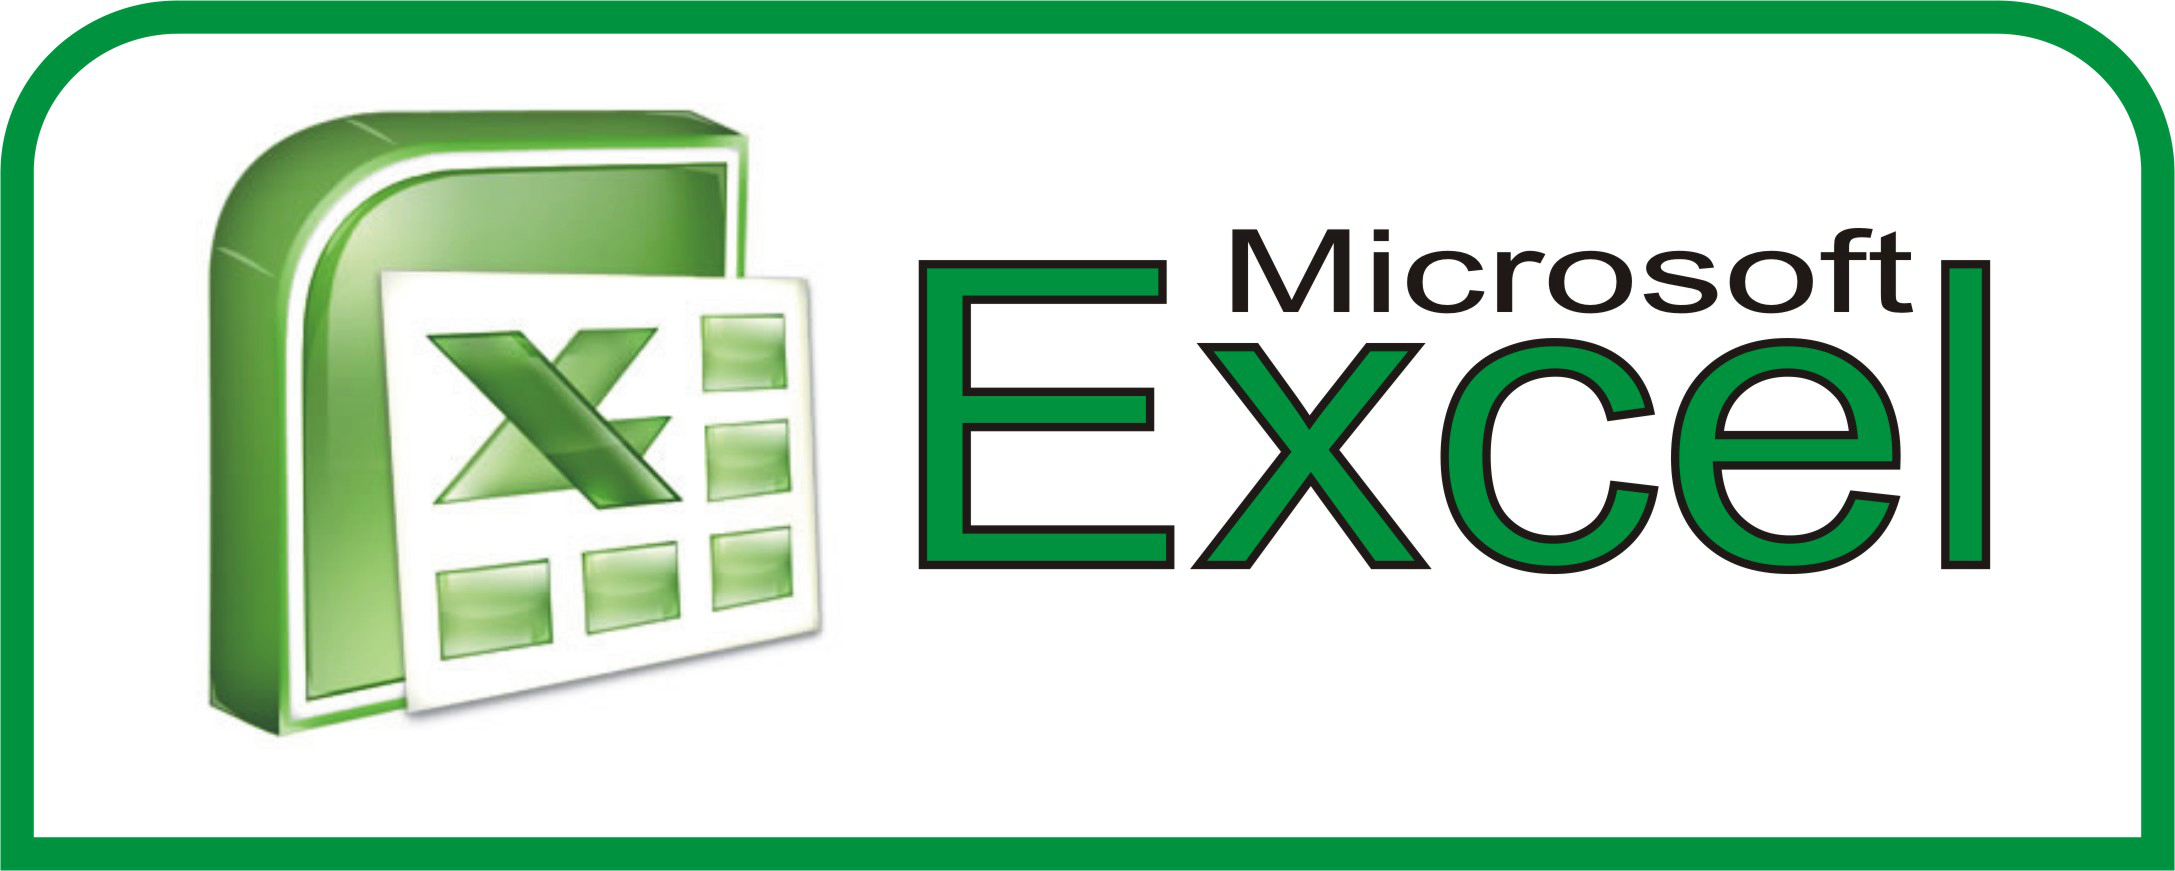 Ediblewildsus  Mesmerizing  Excel Shortcuts You Probably Didnt Know About  Techdissected With Exquisite Excel Division Function Besides Shortcut For Deleting Rows In Excel Furthermore Free Download Microsoft Excel With Cool Join Columns In Excel Also Making A Form In Excel In Addition Aloft Excel London And Formula For Dividing In Excel As Well As Excel Sports Therapy Additionally Finding Quartiles In Excel From Techdissectedcom With Ediblewildsus  Exquisite  Excel Shortcuts You Probably Didnt Know About  Techdissected With Cool Excel Division Function Besides Shortcut For Deleting Rows In Excel Furthermore Free Download Microsoft Excel And Mesmerizing Join Columns In Excel Also Making A Form In Excel In Addition Aloft Excel London From Techdissectedcom